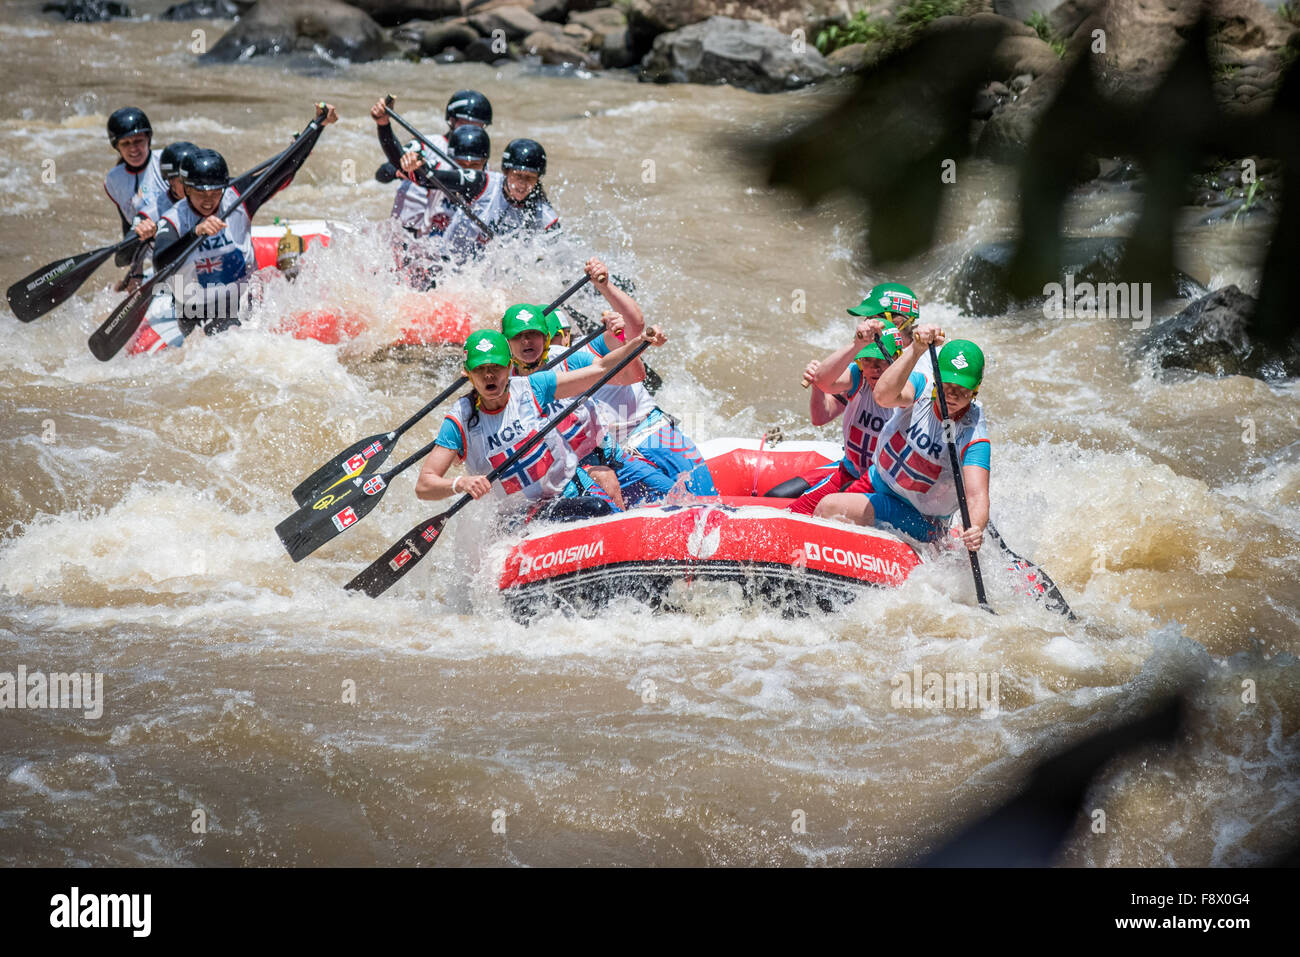 Norwegian and New Zealand master women teams compete on head to head sprint category during World Rafting Championships. - Stock Image